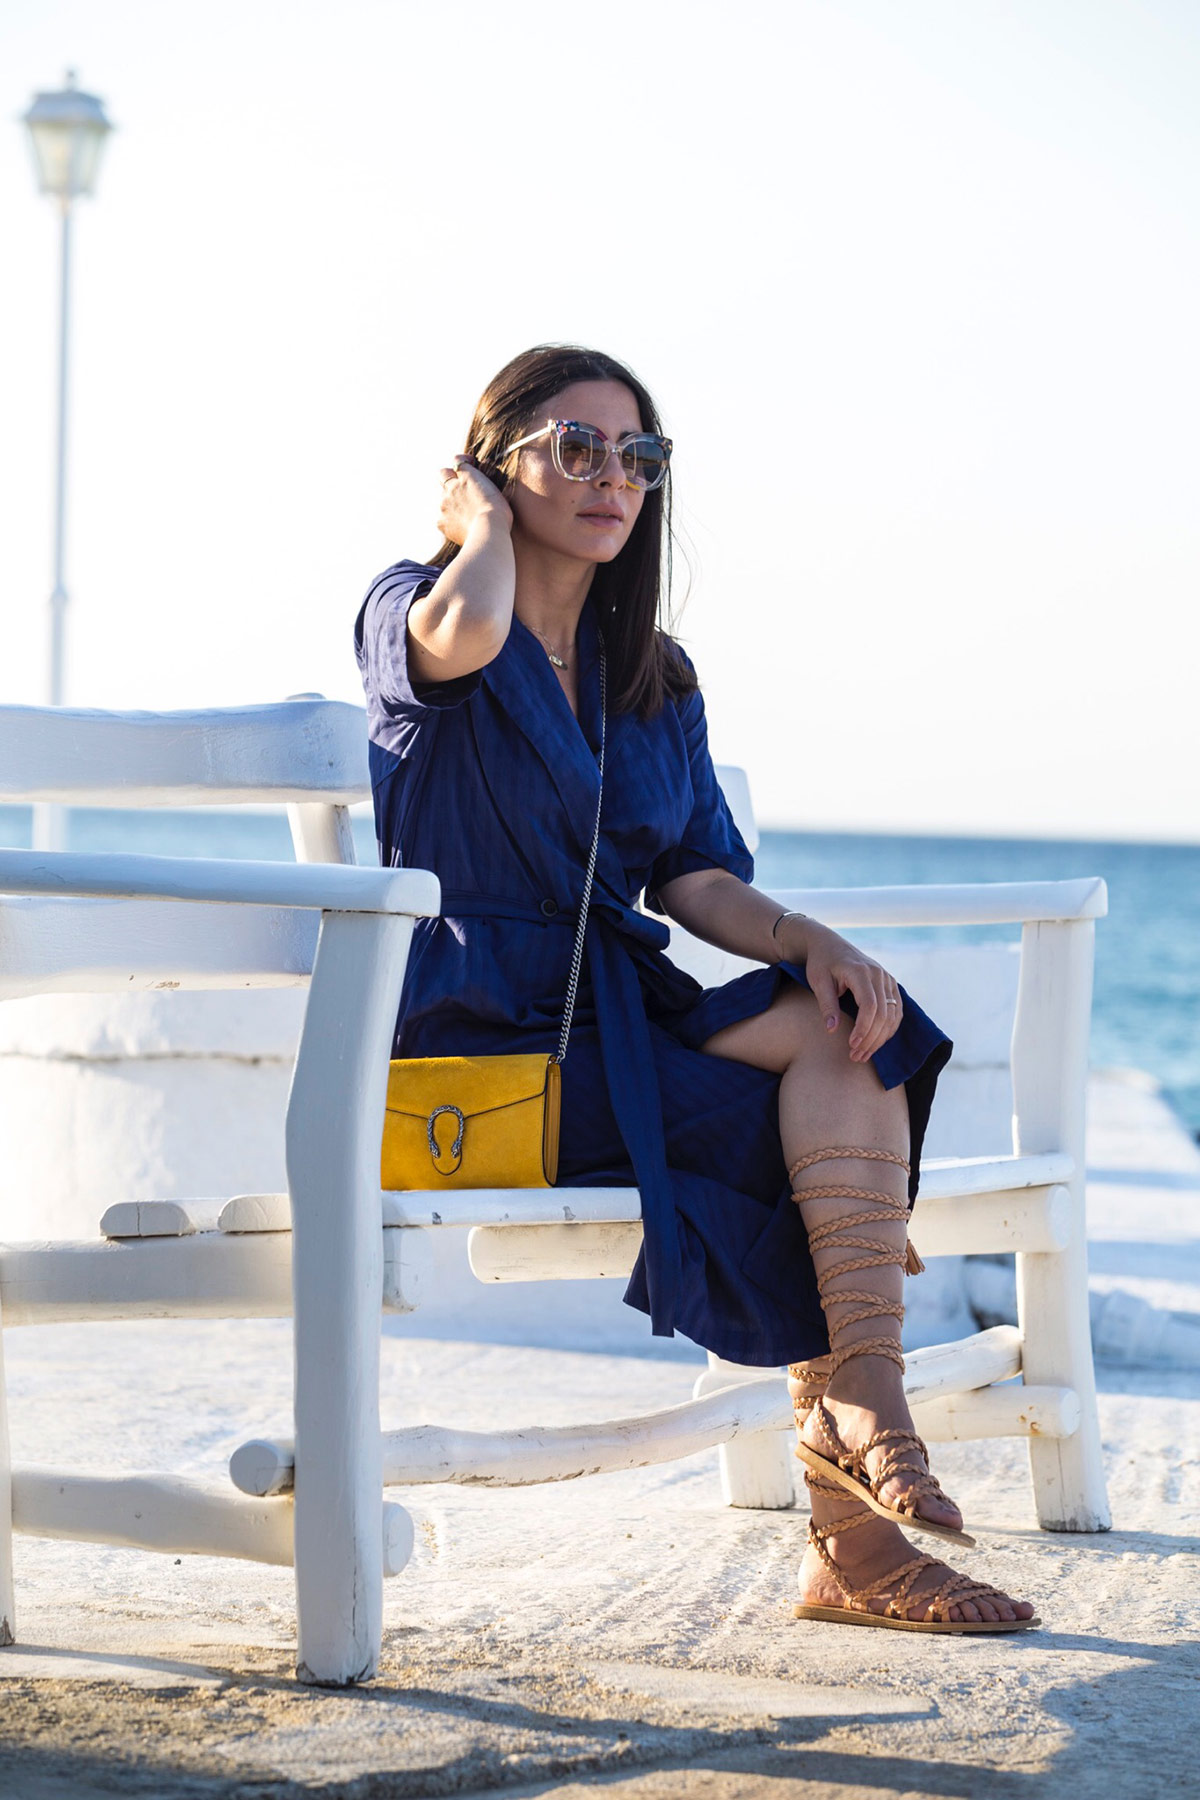 Stella Asteria wearing blue dress & yellow Gucci Dionysus bag, and Fendi sunglasses in Mykonos